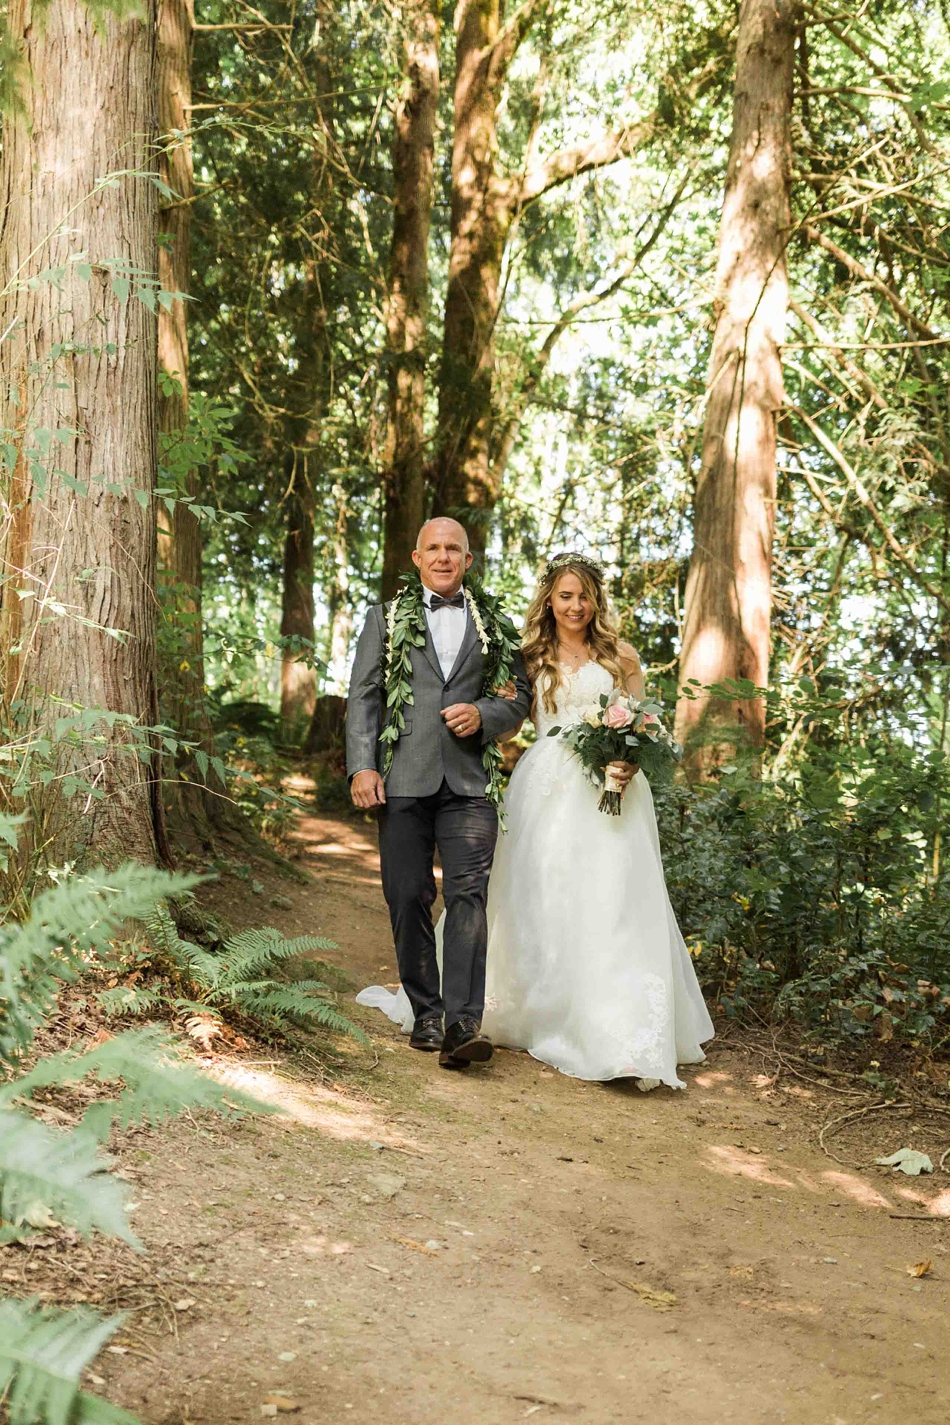 Walking through trees at Twin Willow Gardens in Snohomish. Photos by Joanna Monger Photography, Snohomish and Seattle Wedding Photographer.